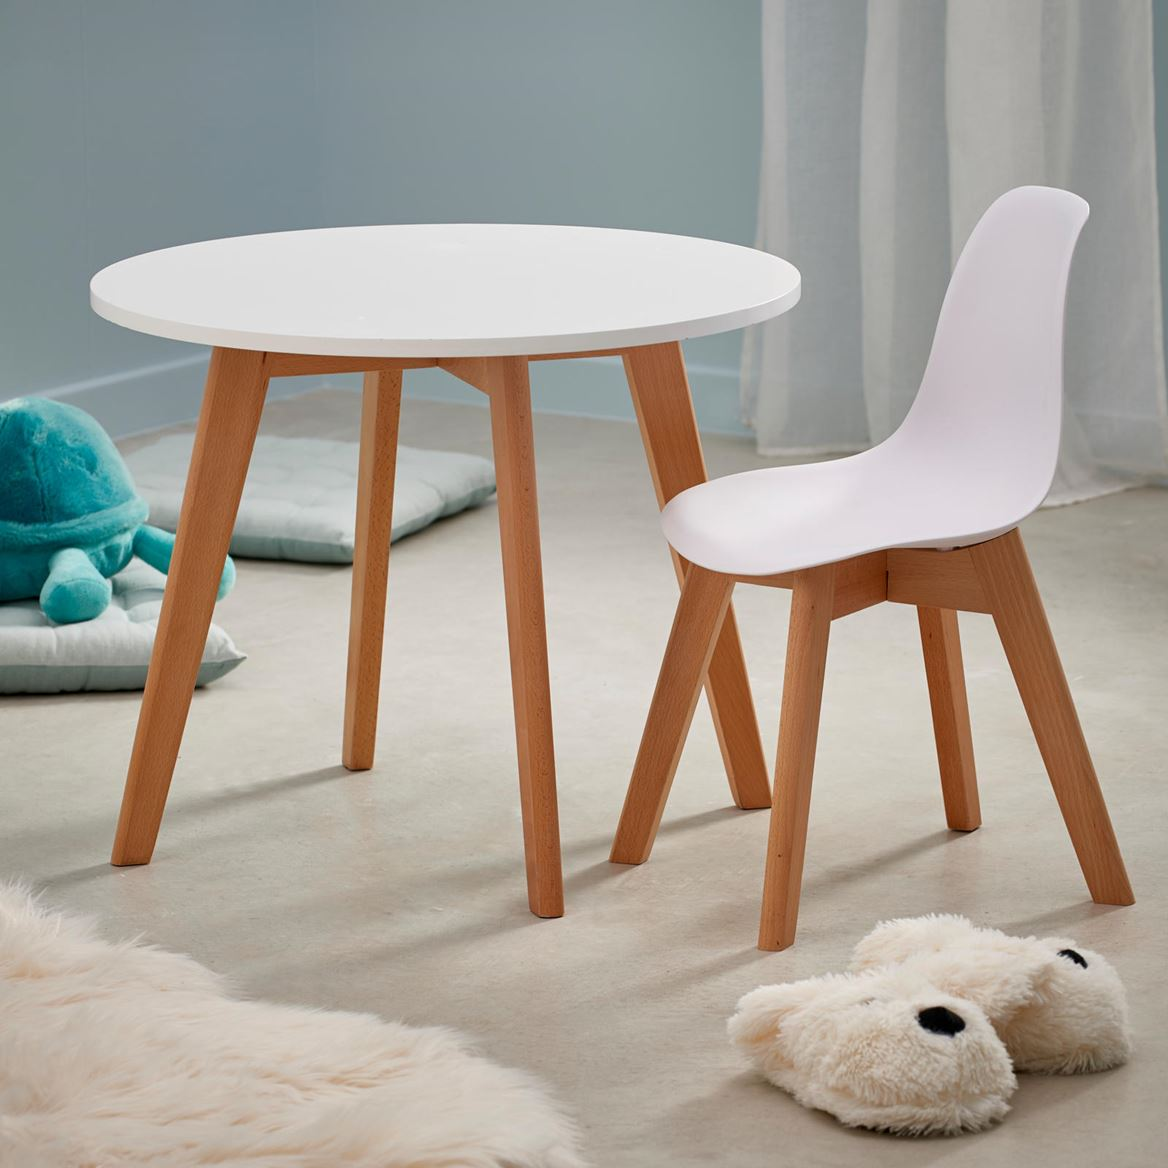 mathias table pour enfants produits feelgood pour la maison et le jardin chez casa. Black Bedroom Furniture Sets. Home Design Ideas